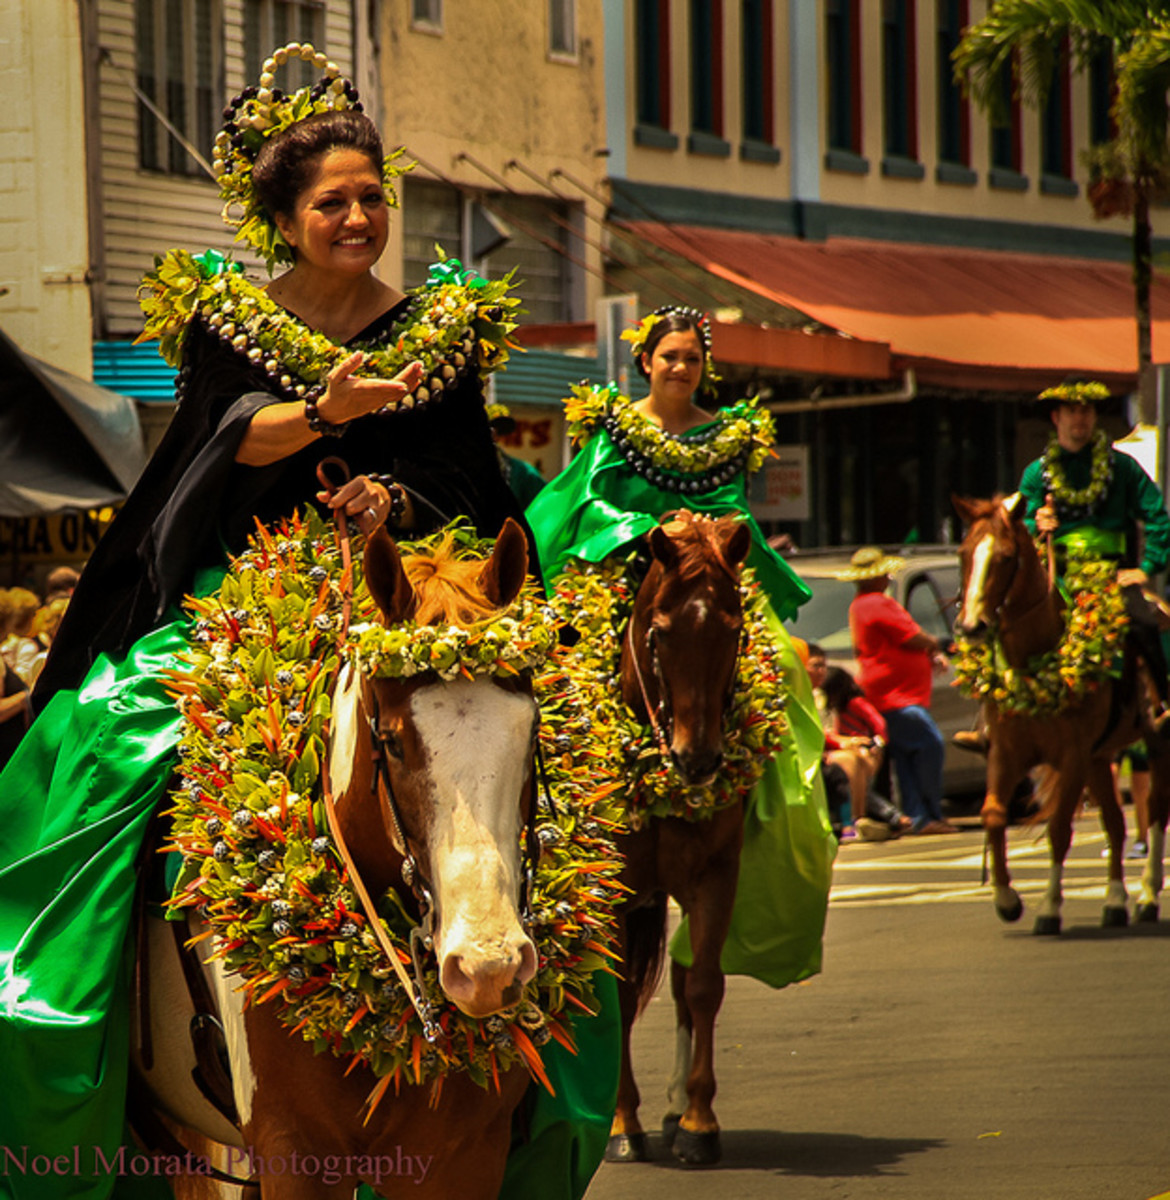 Pā'ū rider from Moloka'i. Moloka'i's color is green and its flower is the pua kukui. Check out the horse!